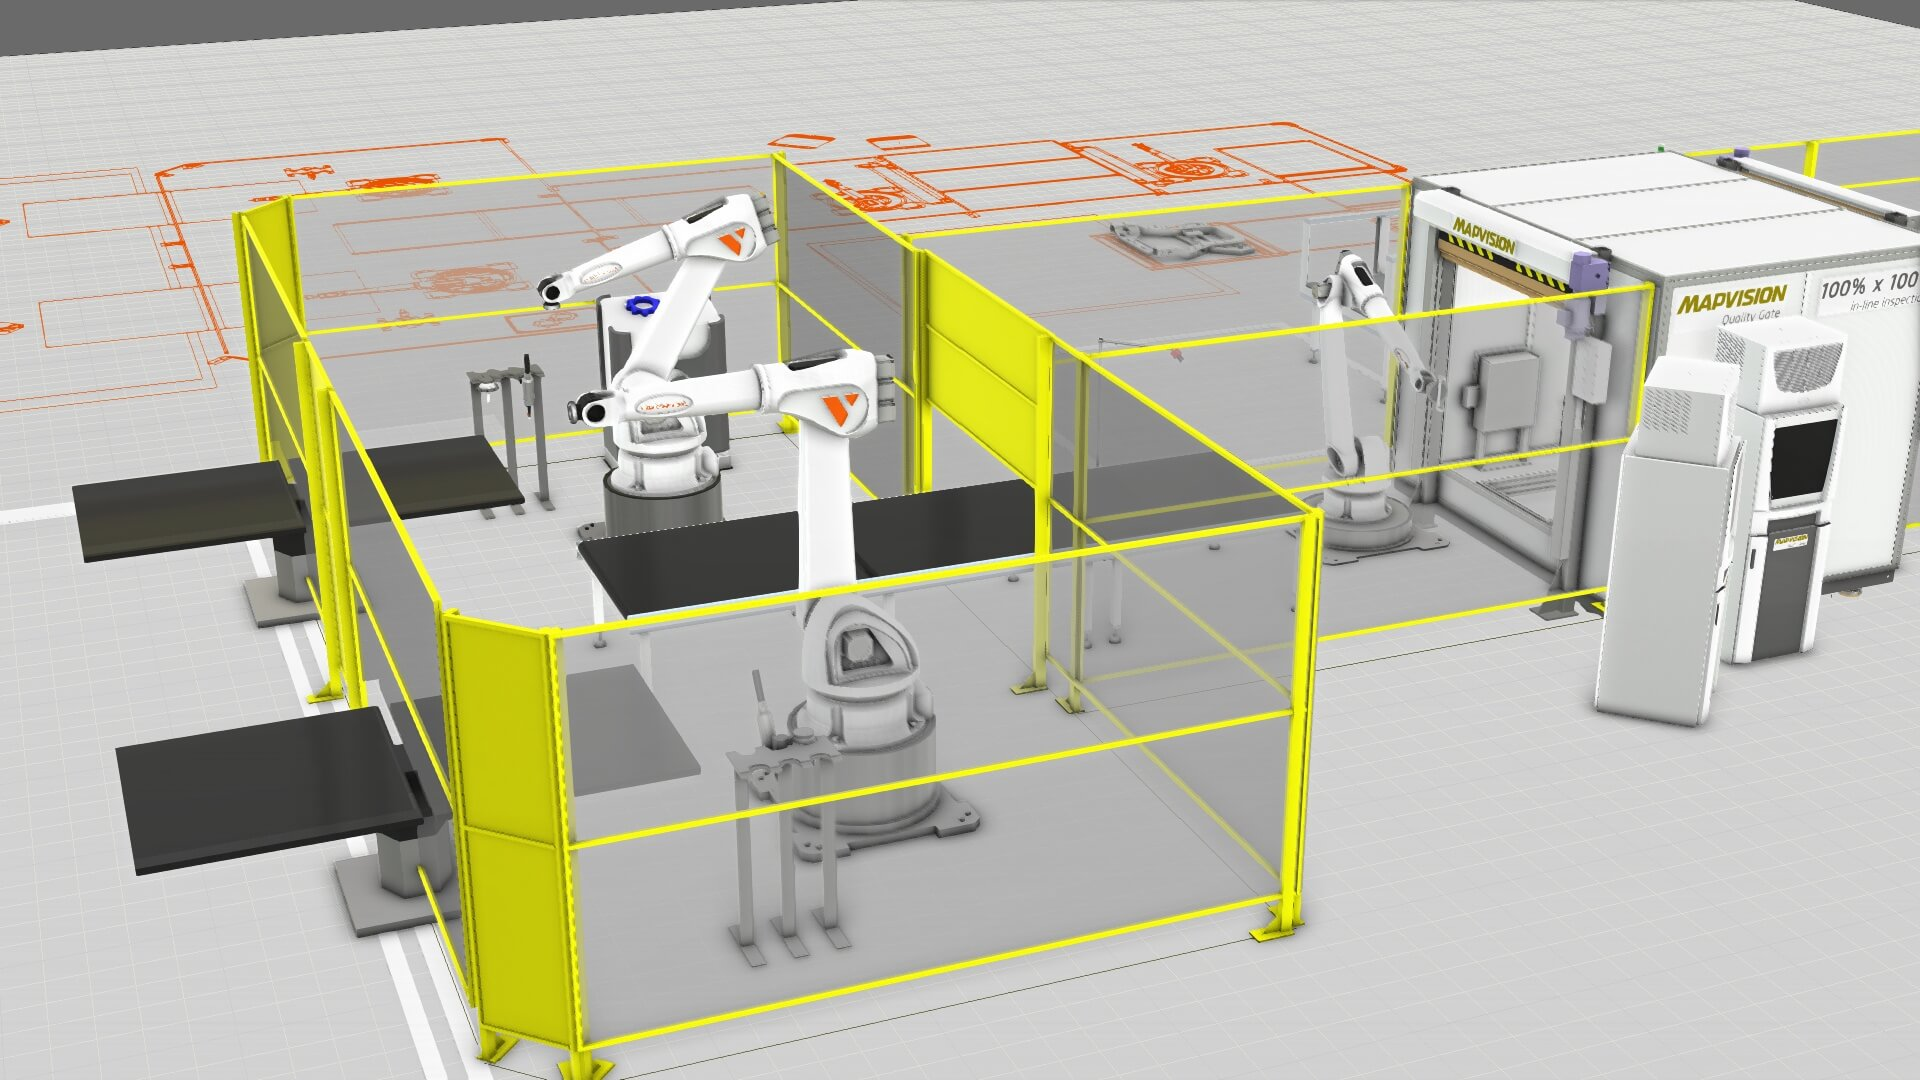 Plant and manufacturing simulation with robots welding